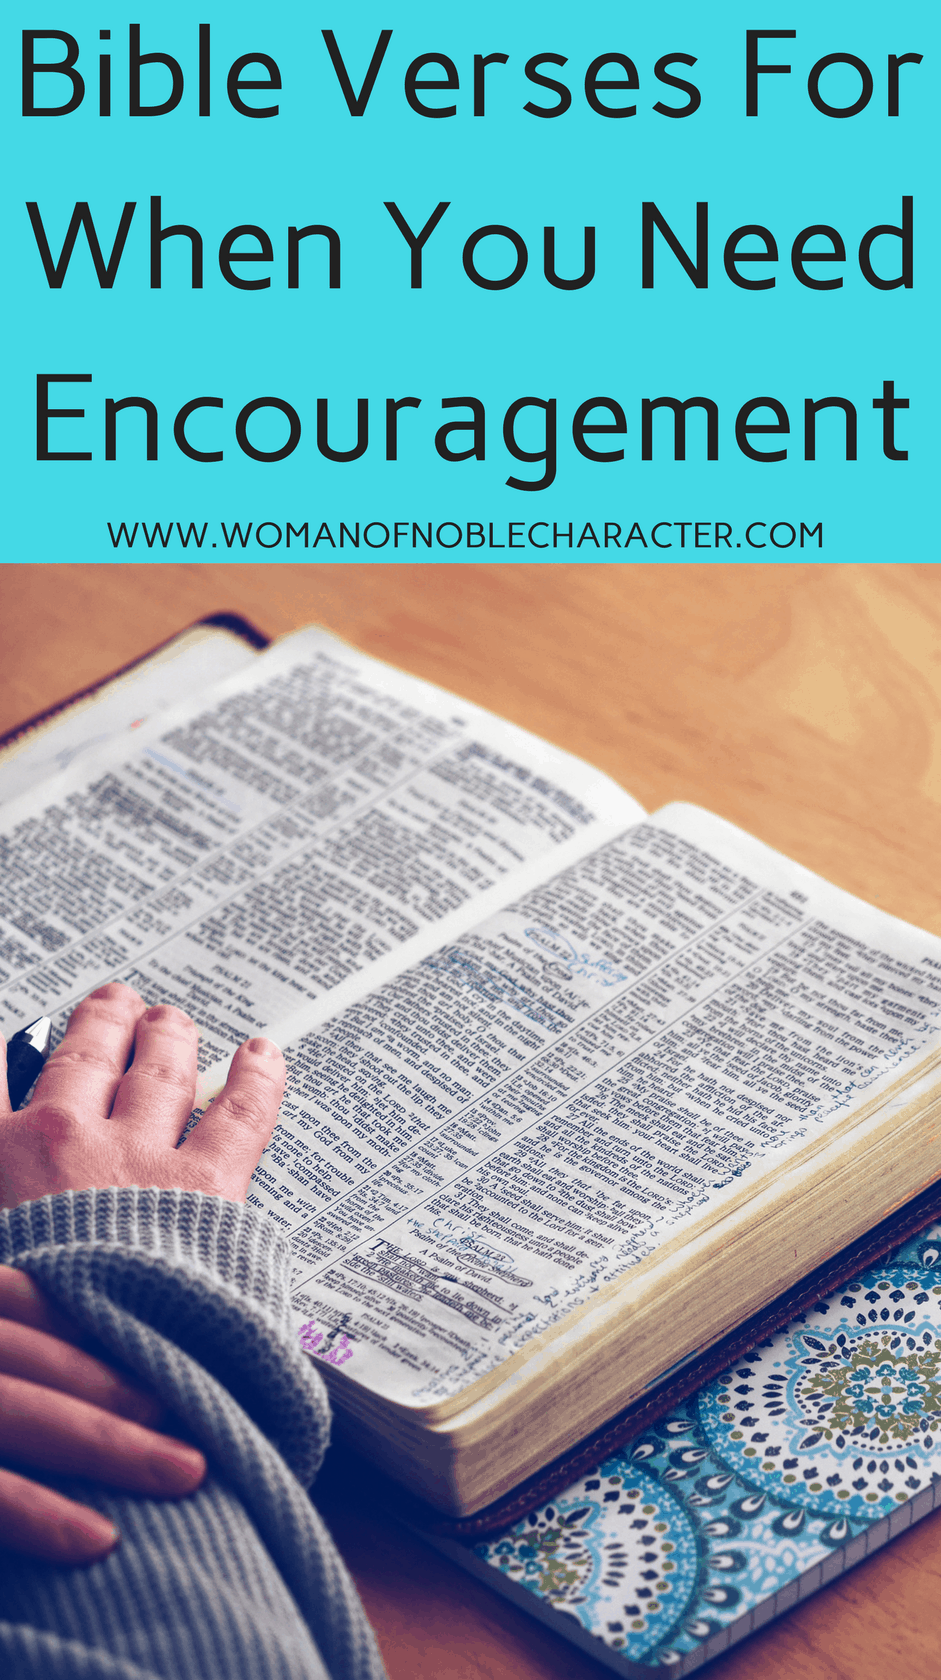 Bible verses to encourage you during difficult times